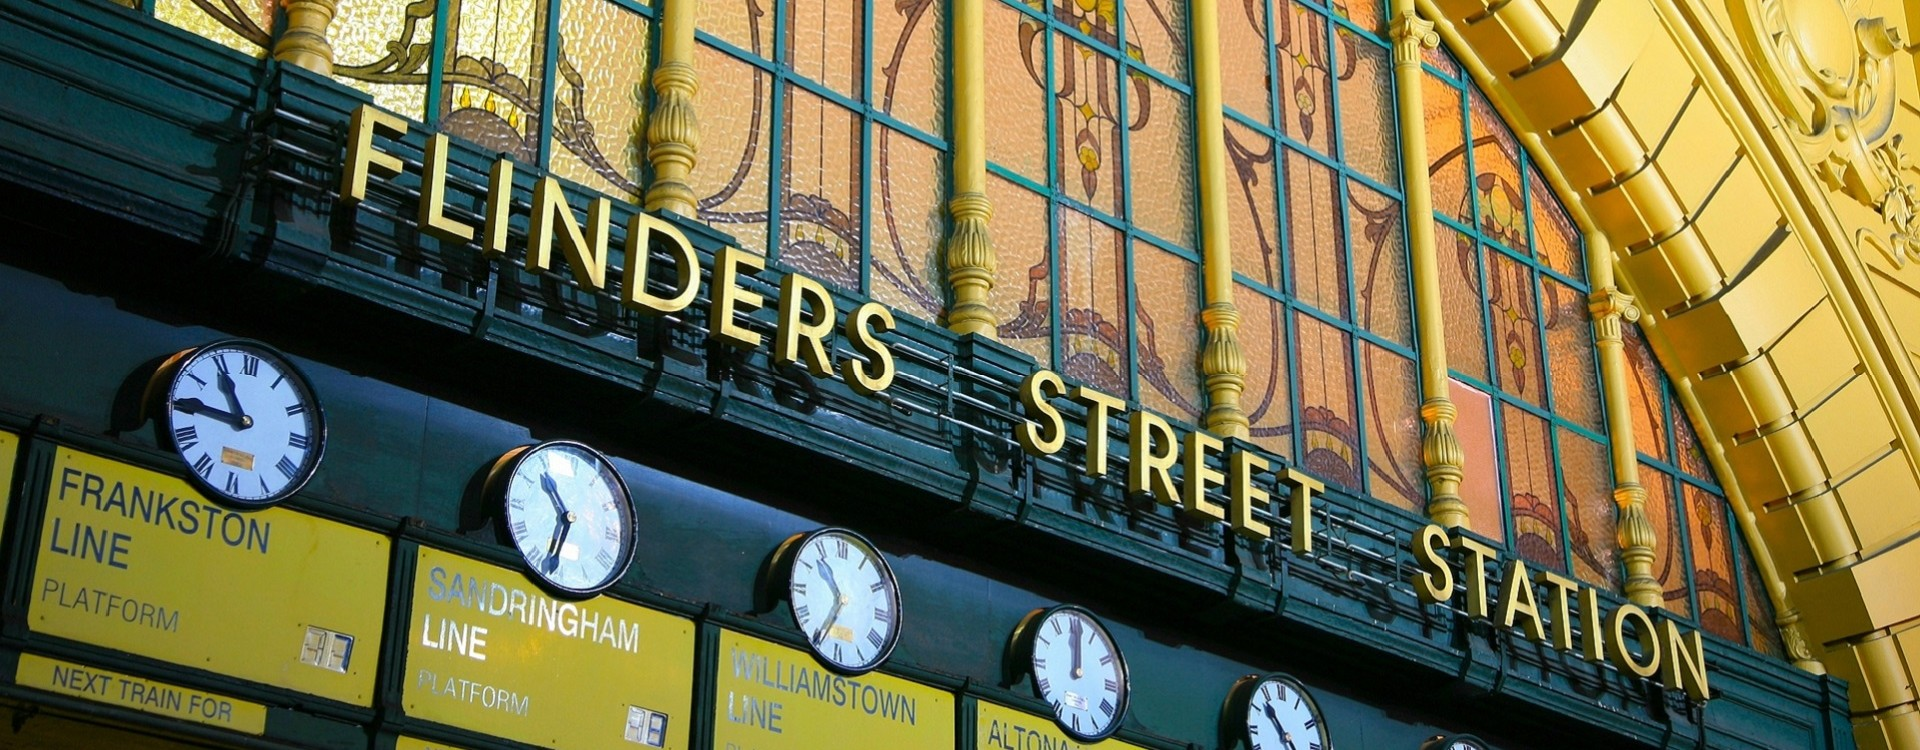 """I'll meet you under the clocks"" – Flinders St station is the iconic landmark in Melbourne's CBD"